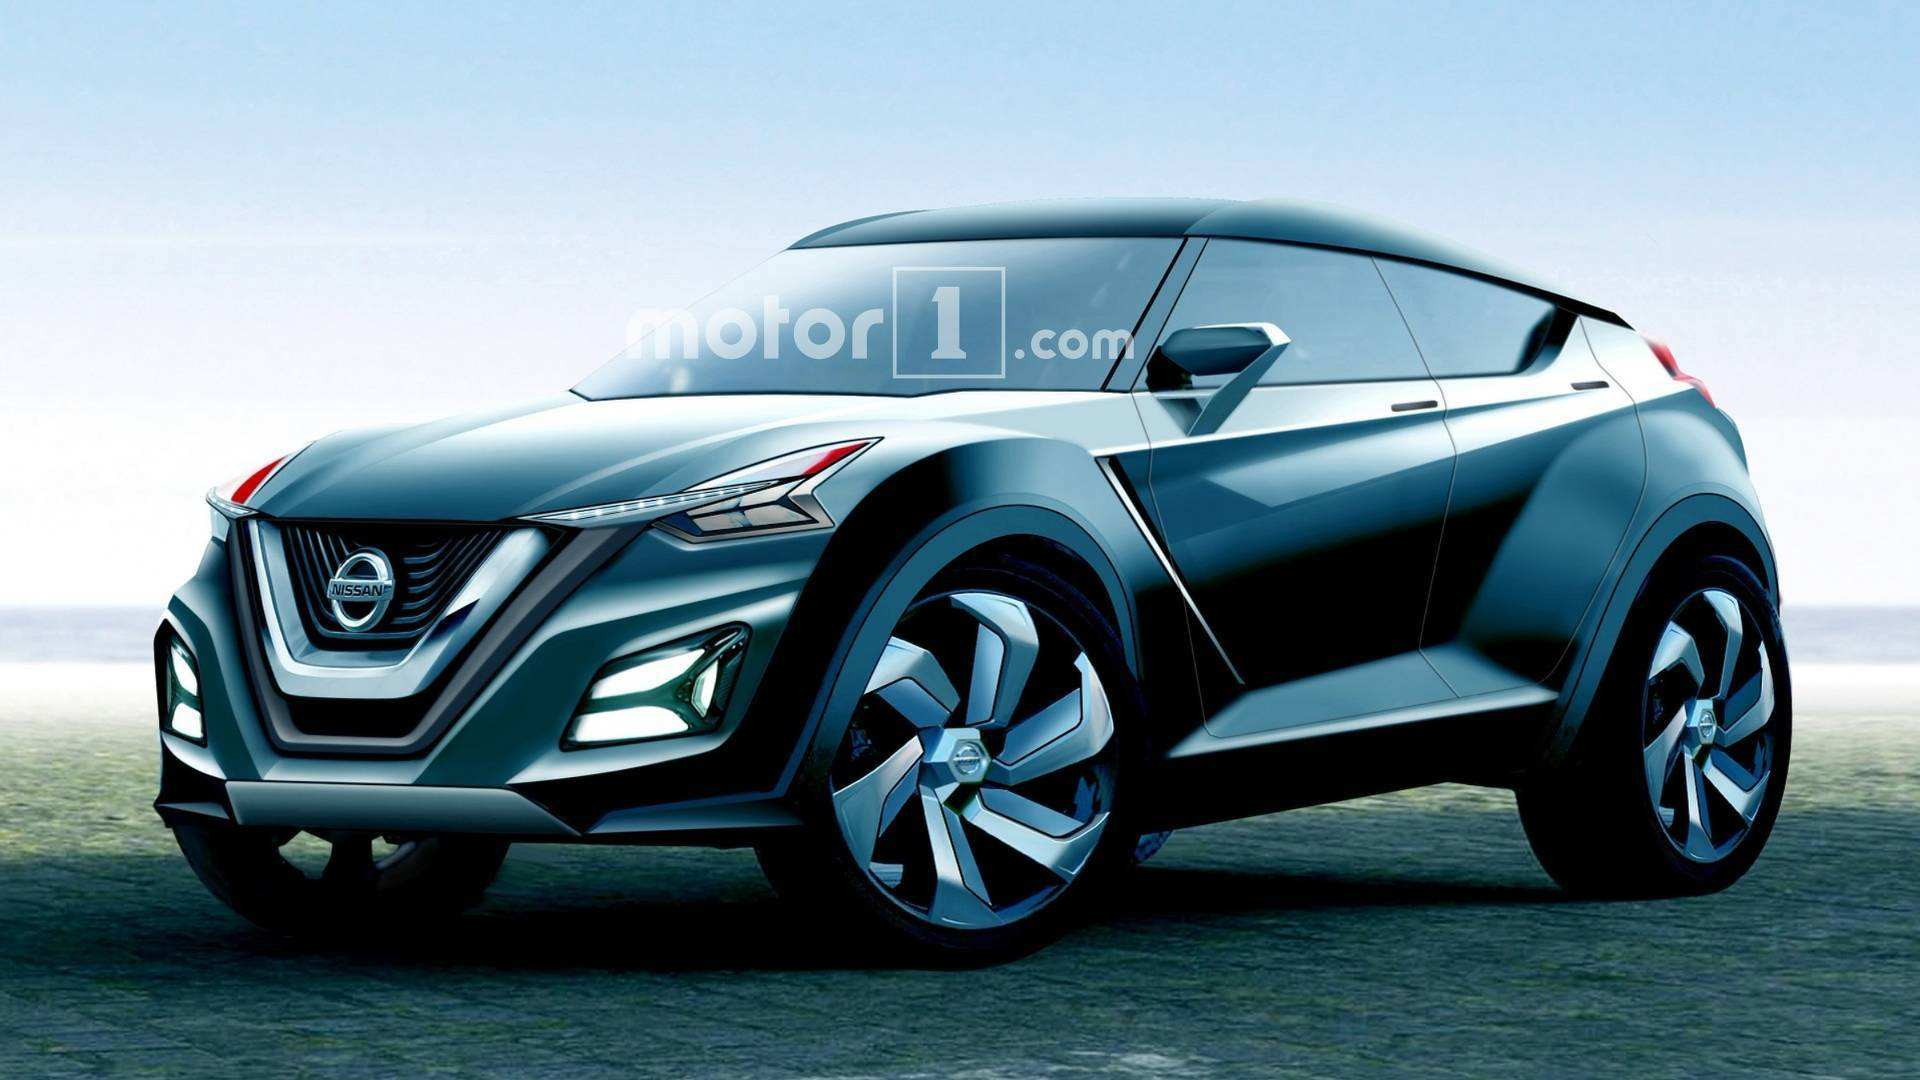 36 All New Nissan Concept 2020 Suv History with Nissan Concept 2020 Suv